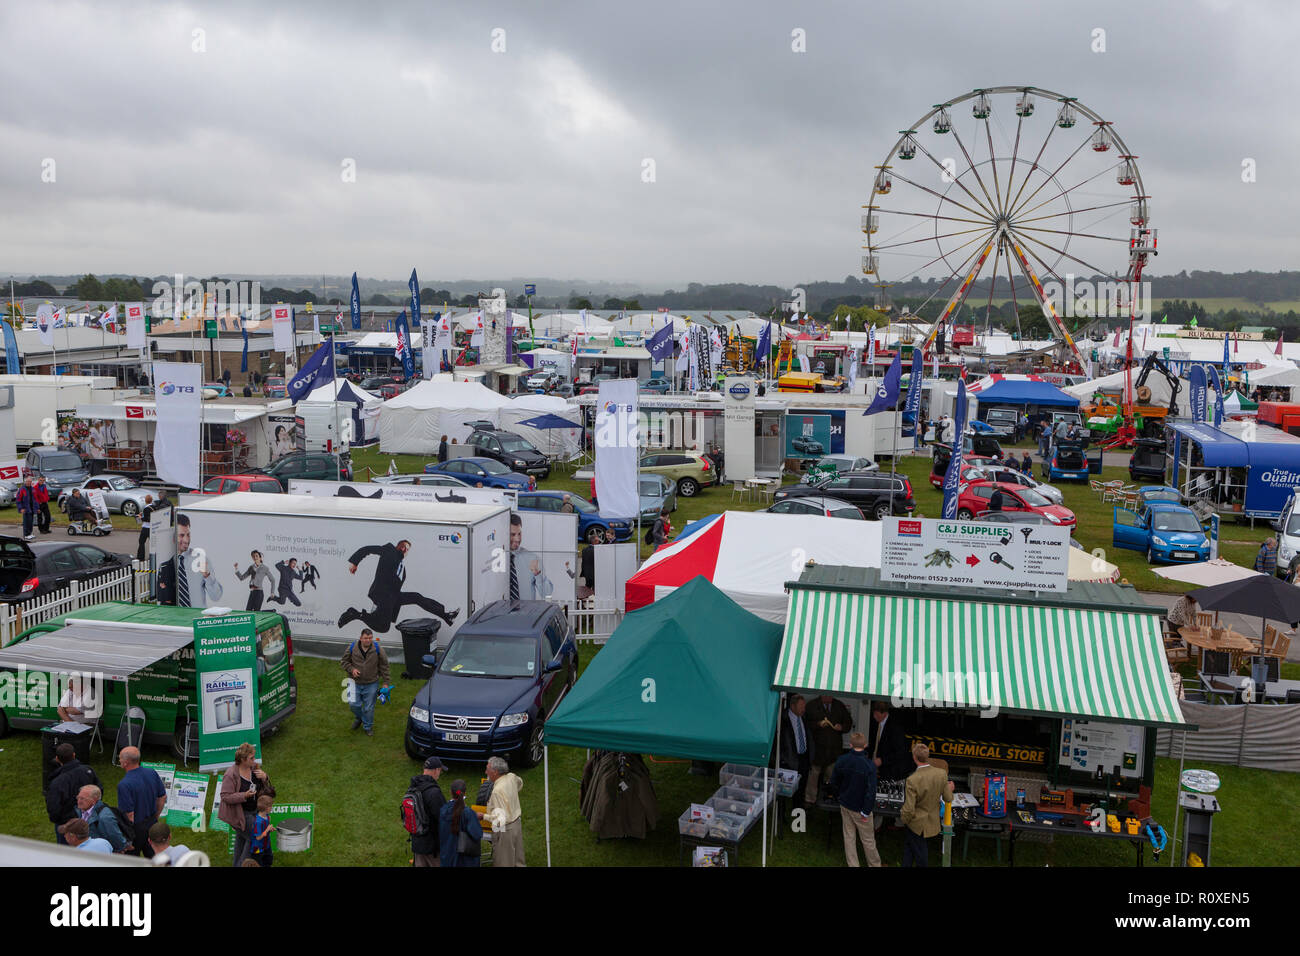 View of the Great Yorkshire Showground with trade stands and displays - Stock Image